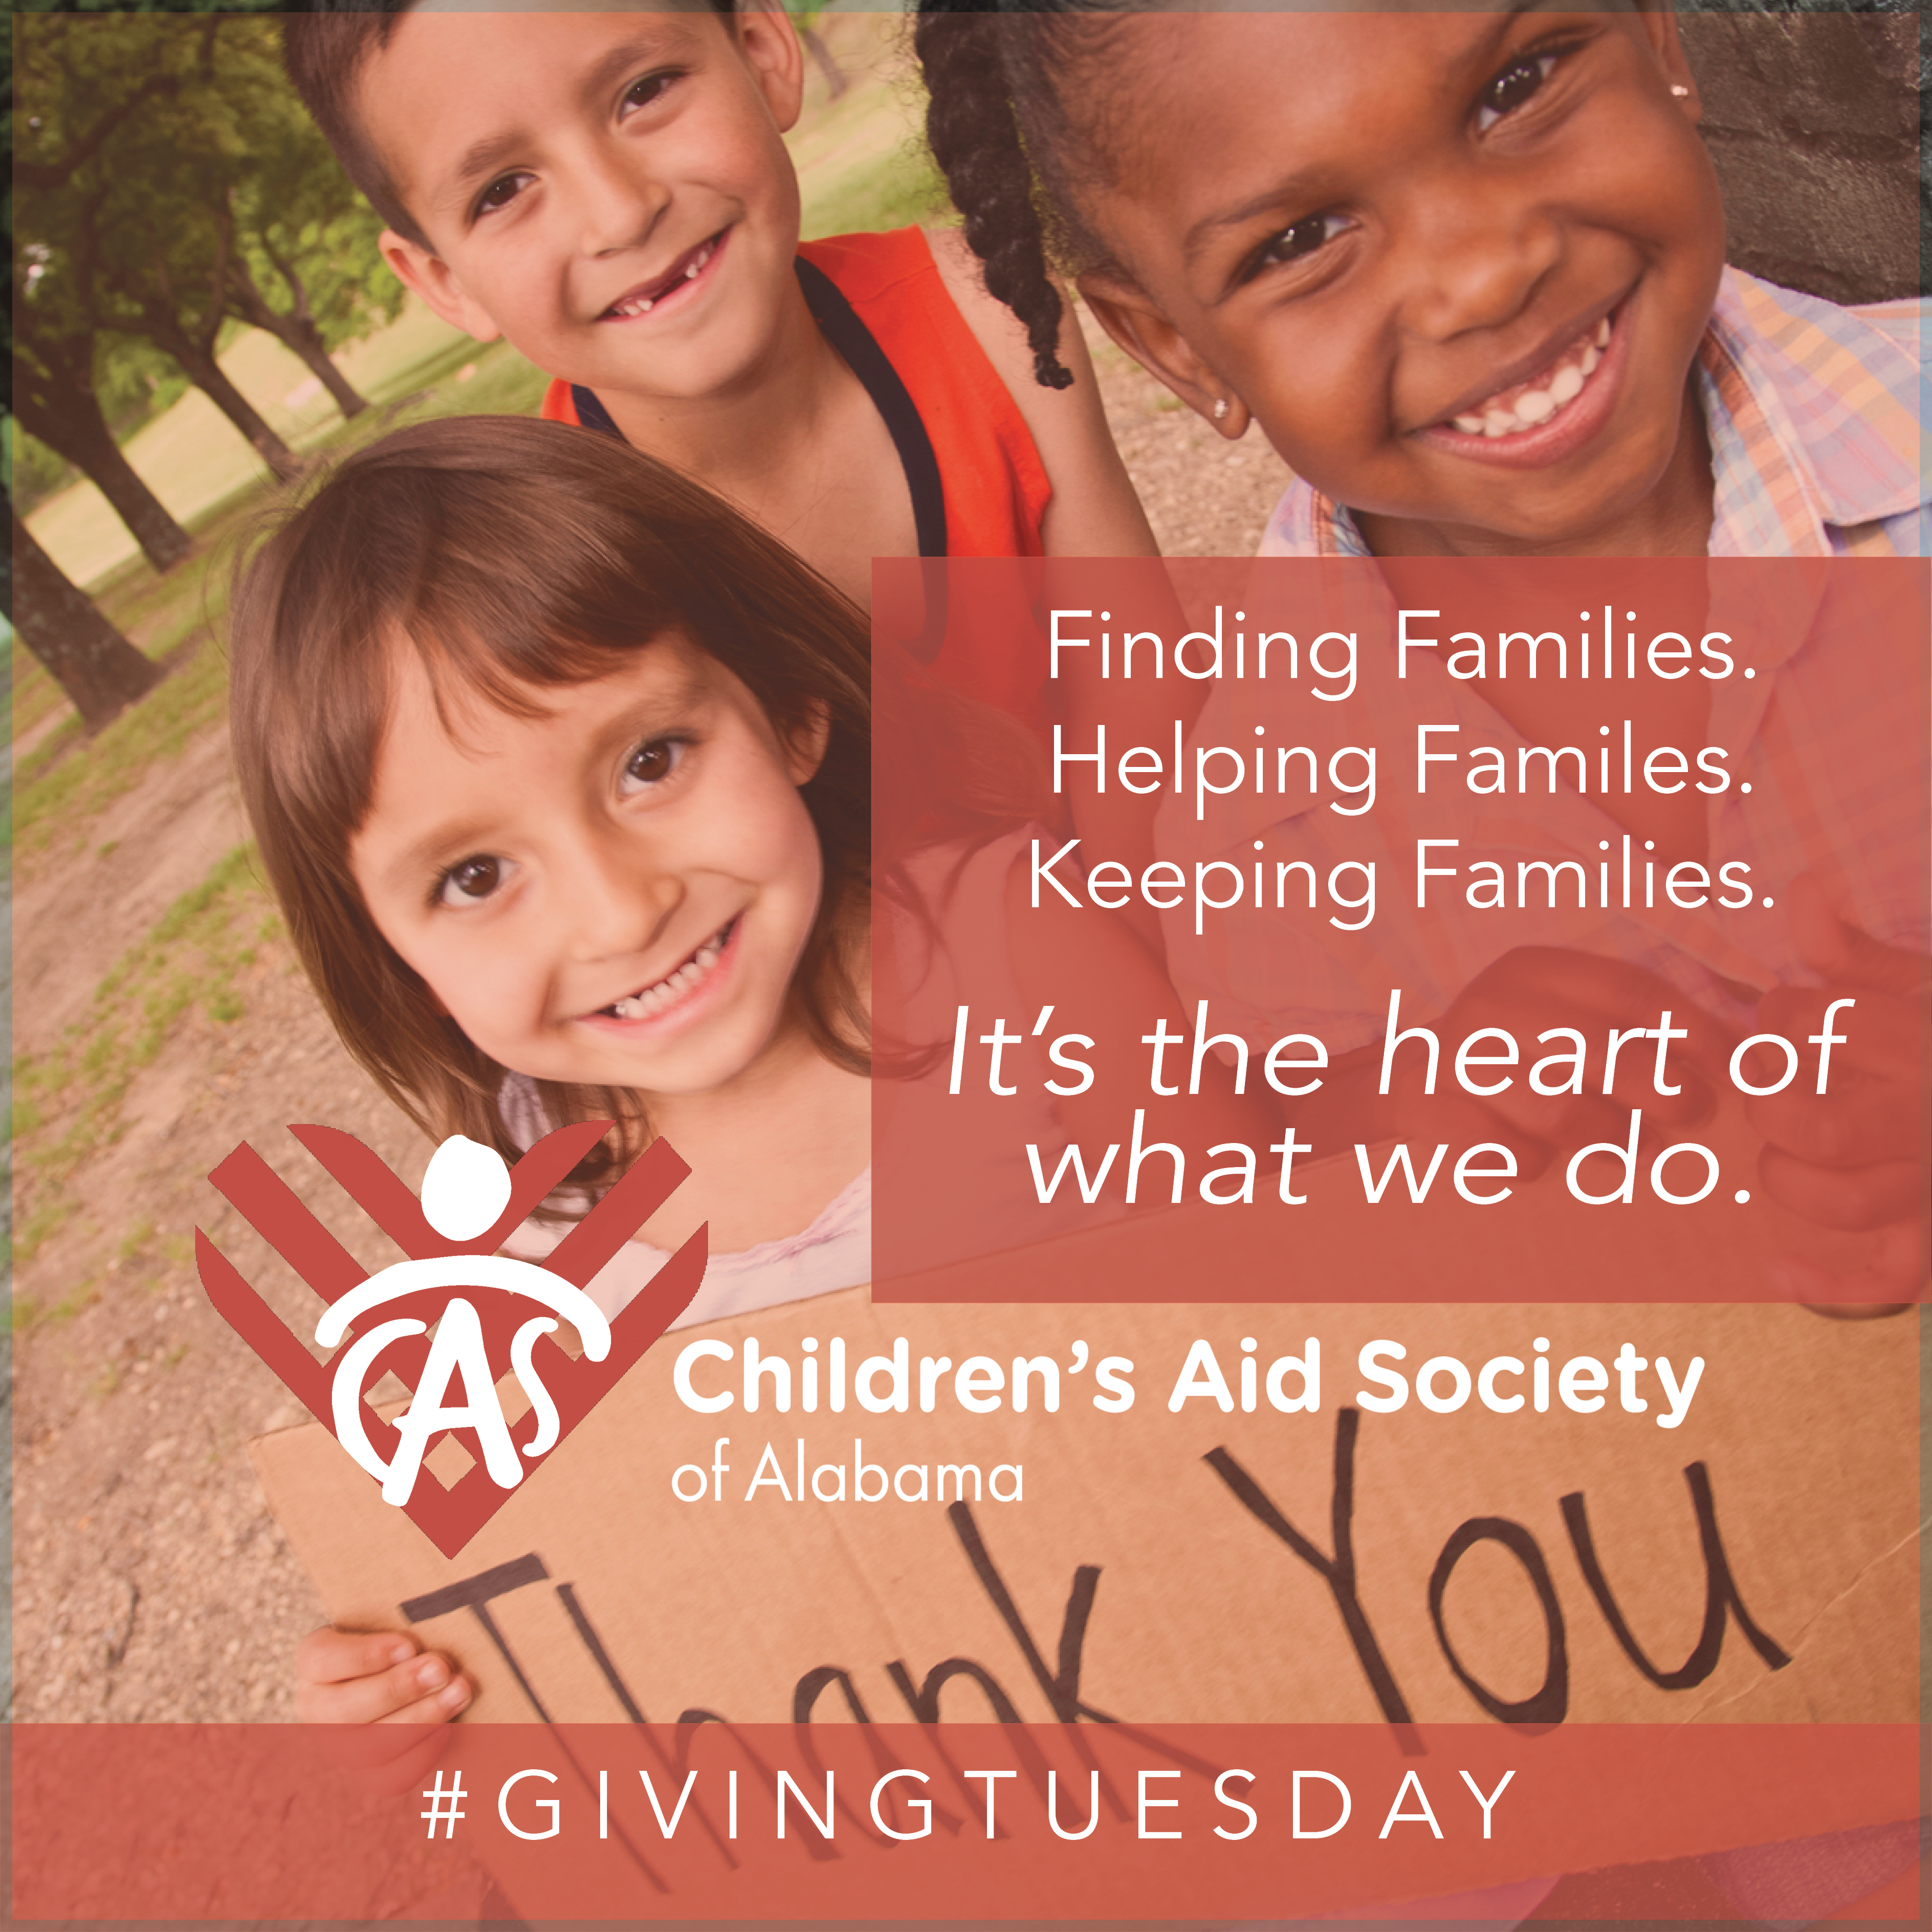 Consider Partnering with us on Giving Tuesday!